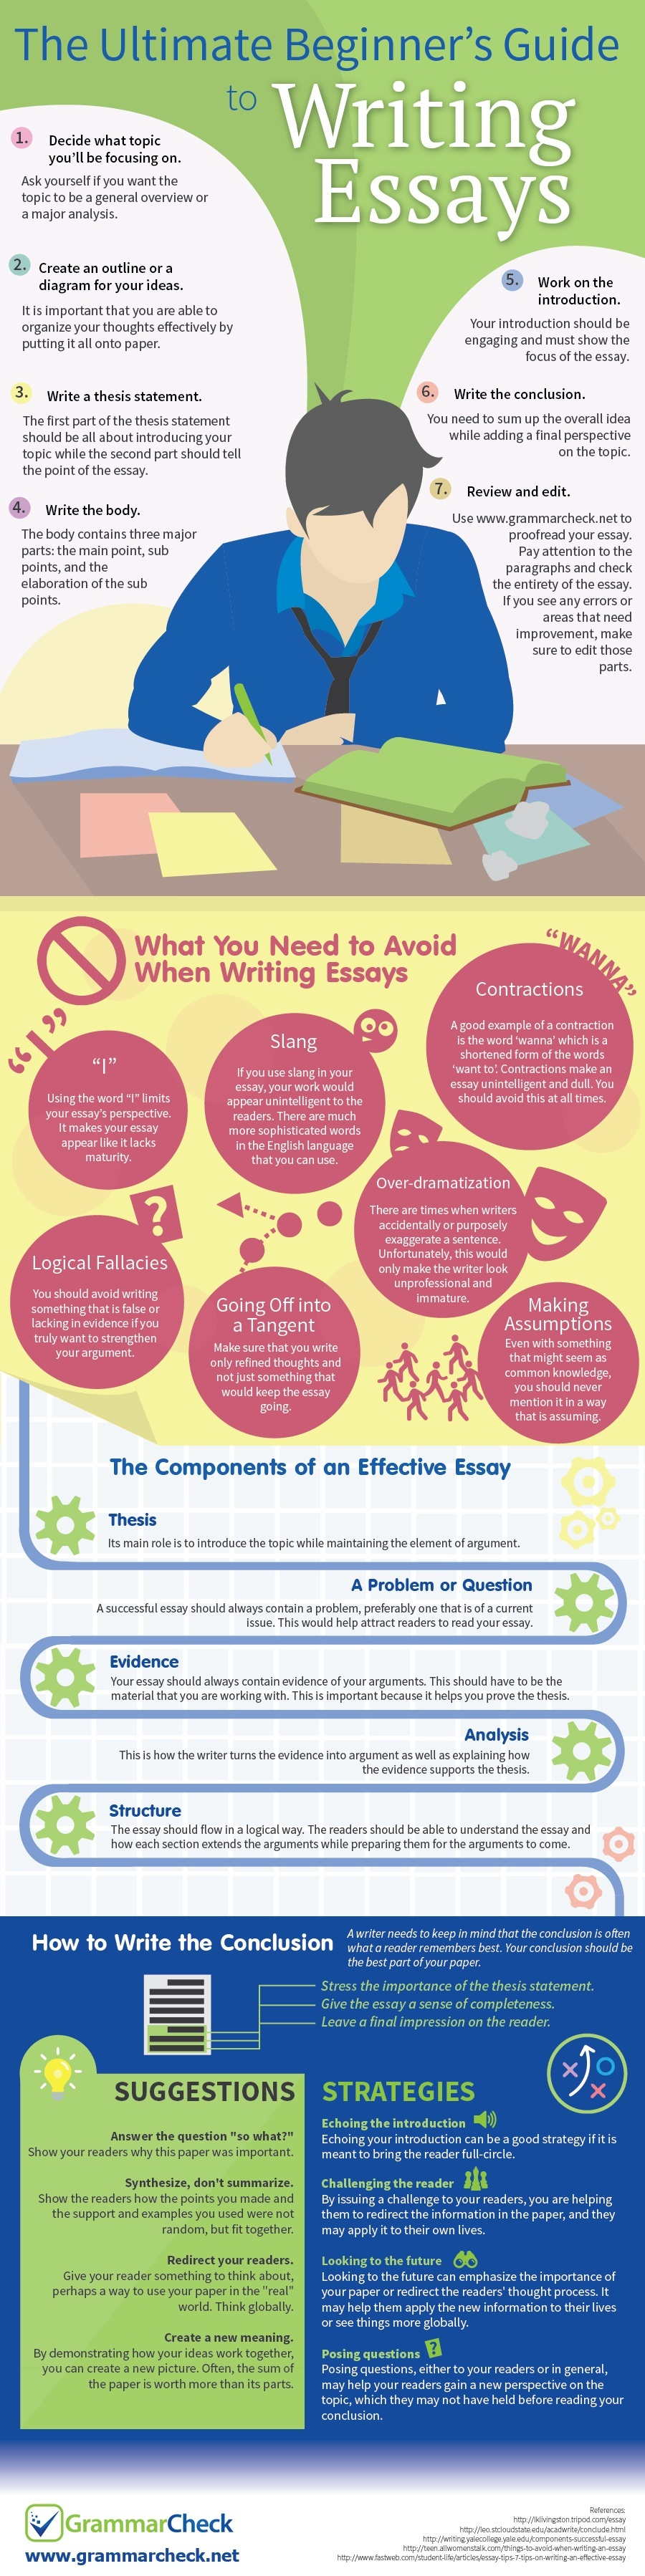 The Banking Concept Of Education Essay The Ultimate Beginners Guide To Writing Essays Infographic Biographical Narrative Essay Example also The Dust Bowl Essay The Ultimate Beginners Guide To Writing Essays  Writers Knowhow The Canterbury Tales Essay